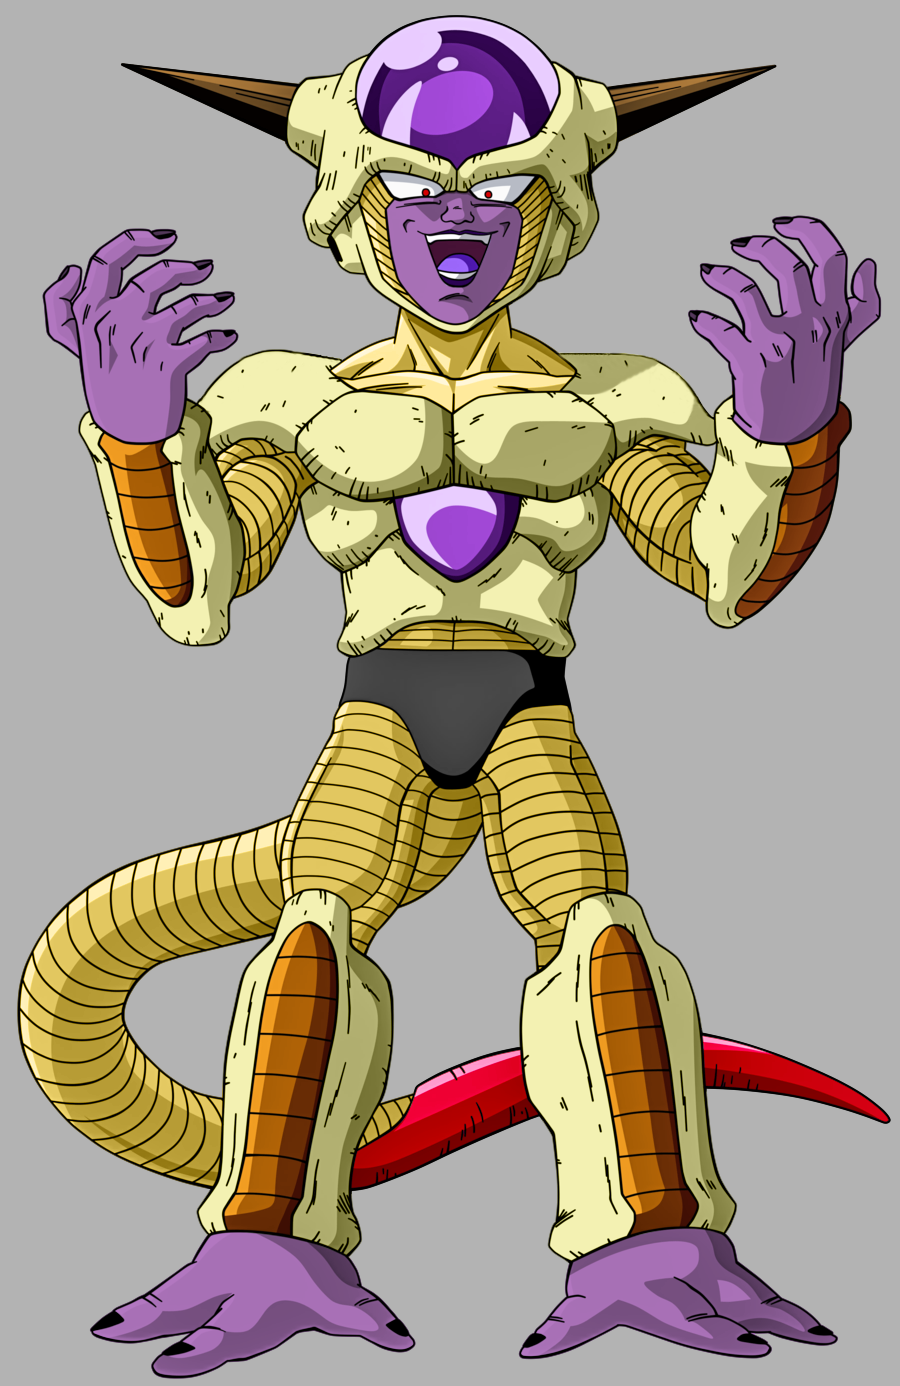 Golden Frieza 1st Form by SilverBuller on DeviantArt